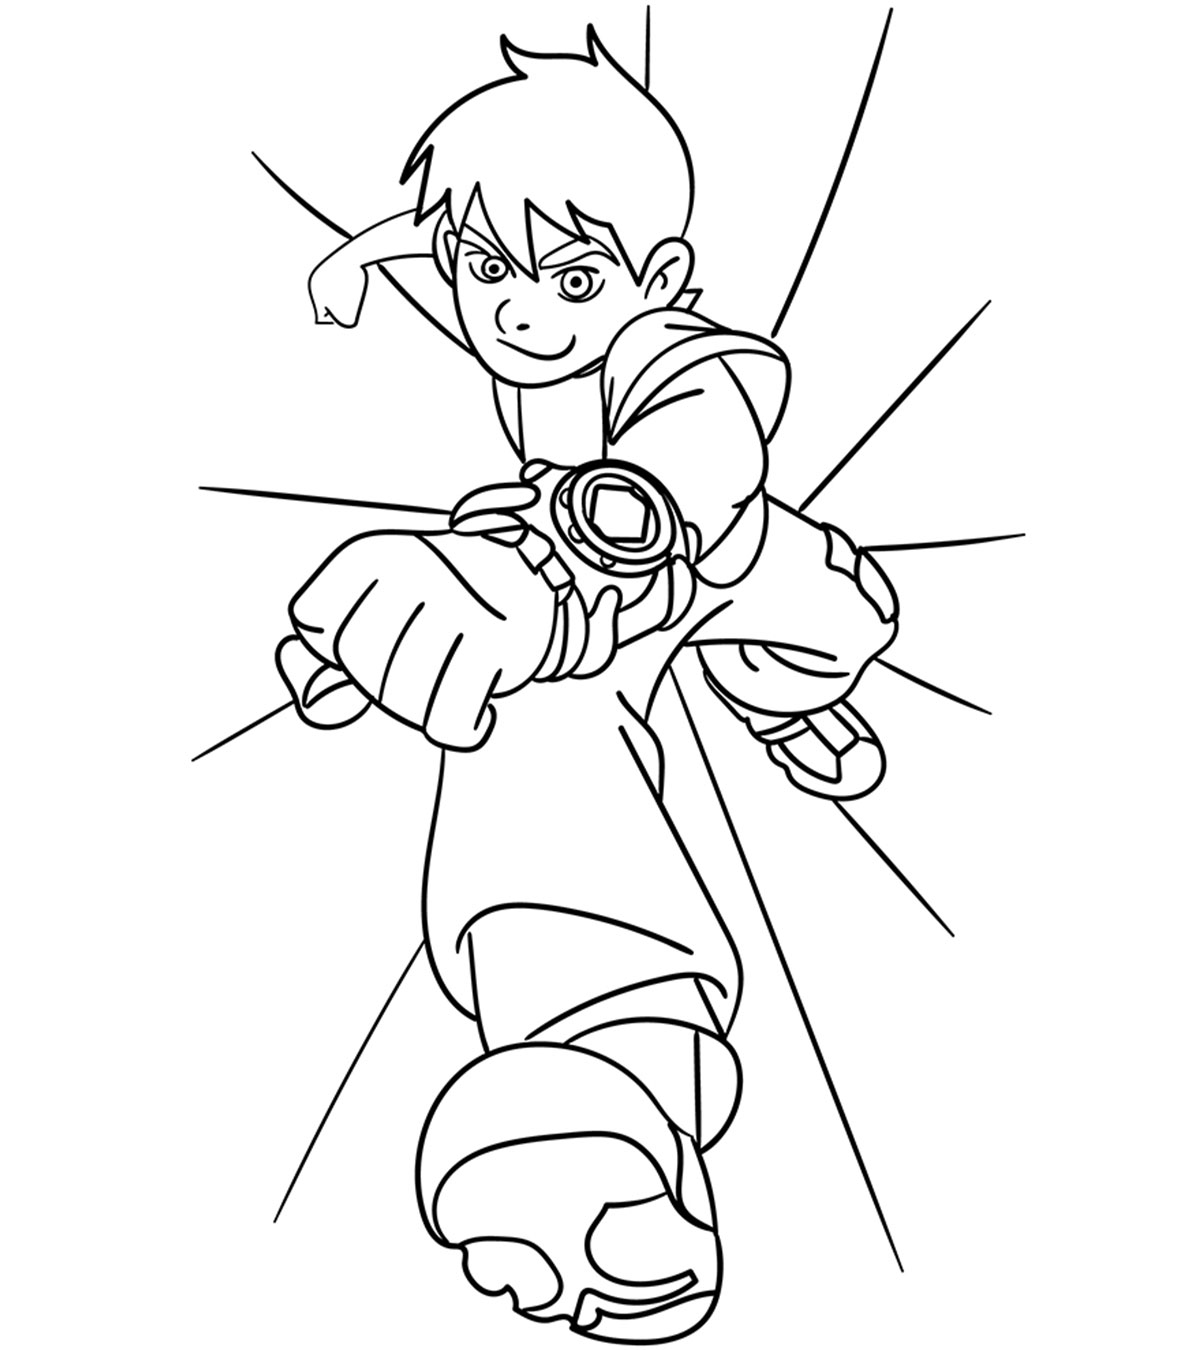 - Ben 10 Coloring Pages : 20 Free Printable For Little Ones